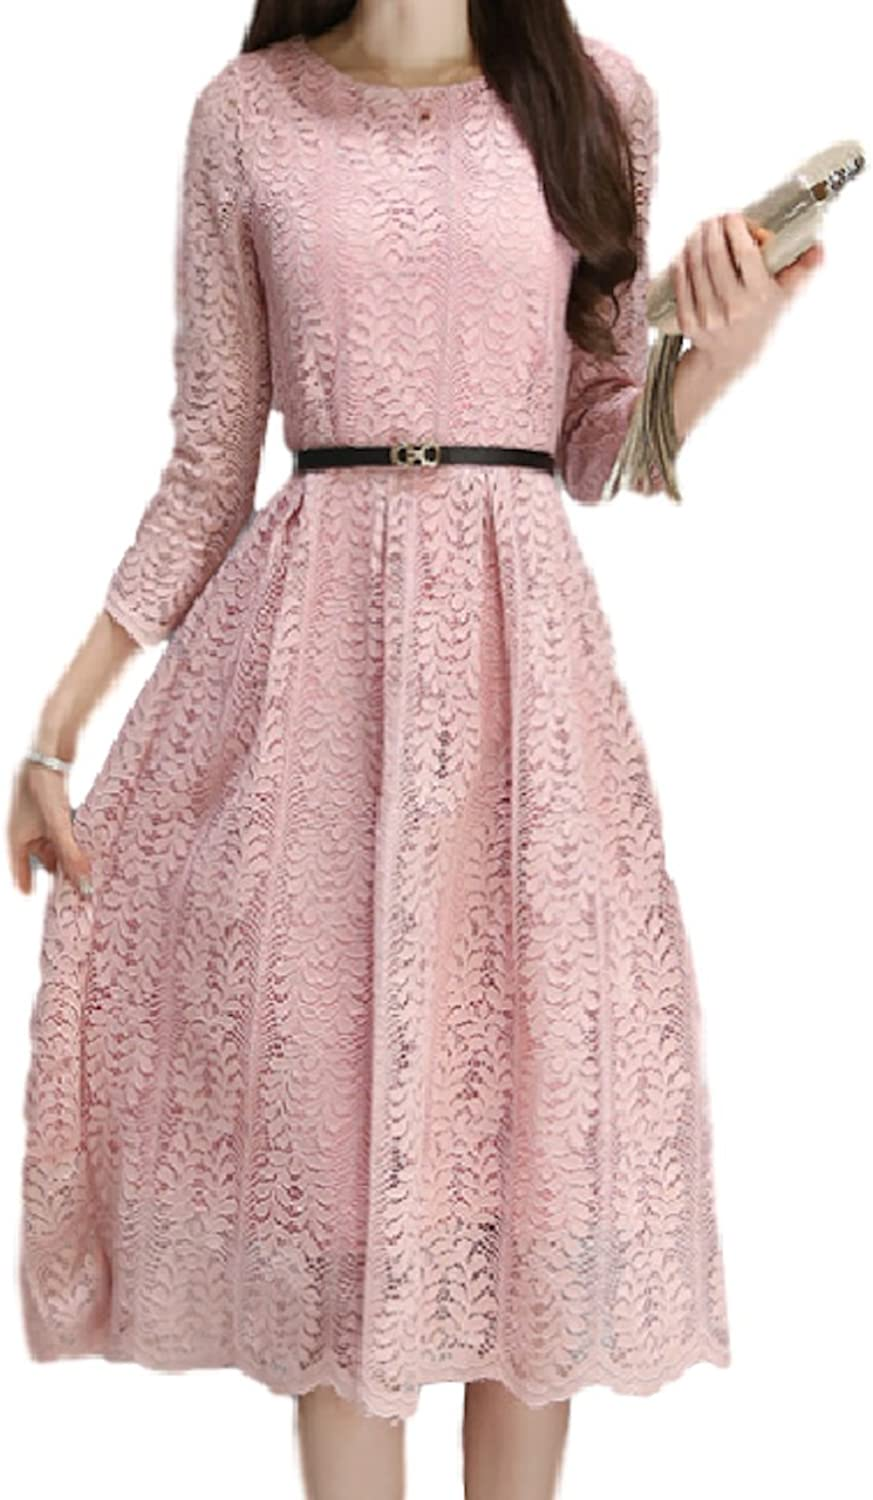 Tsstore Women's Floral Lace Pierced Slim Party Cocktail Dress